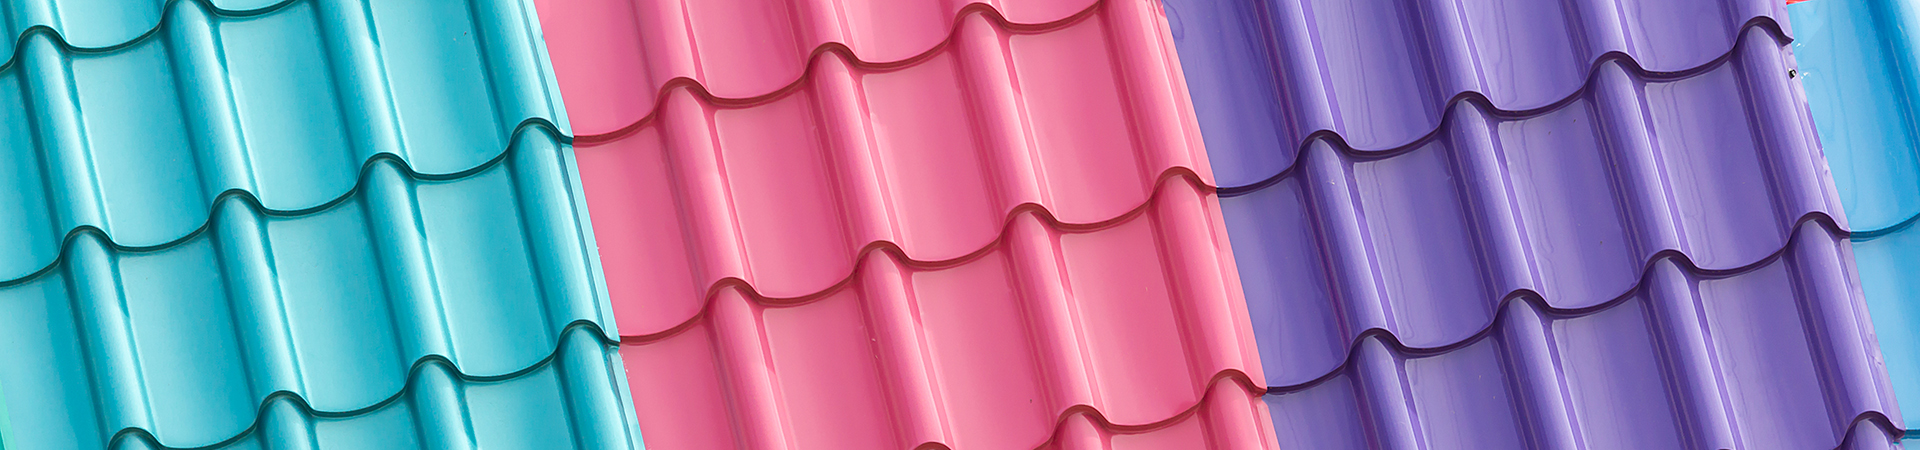 Charminar Roofing Coloured Steel Sheets